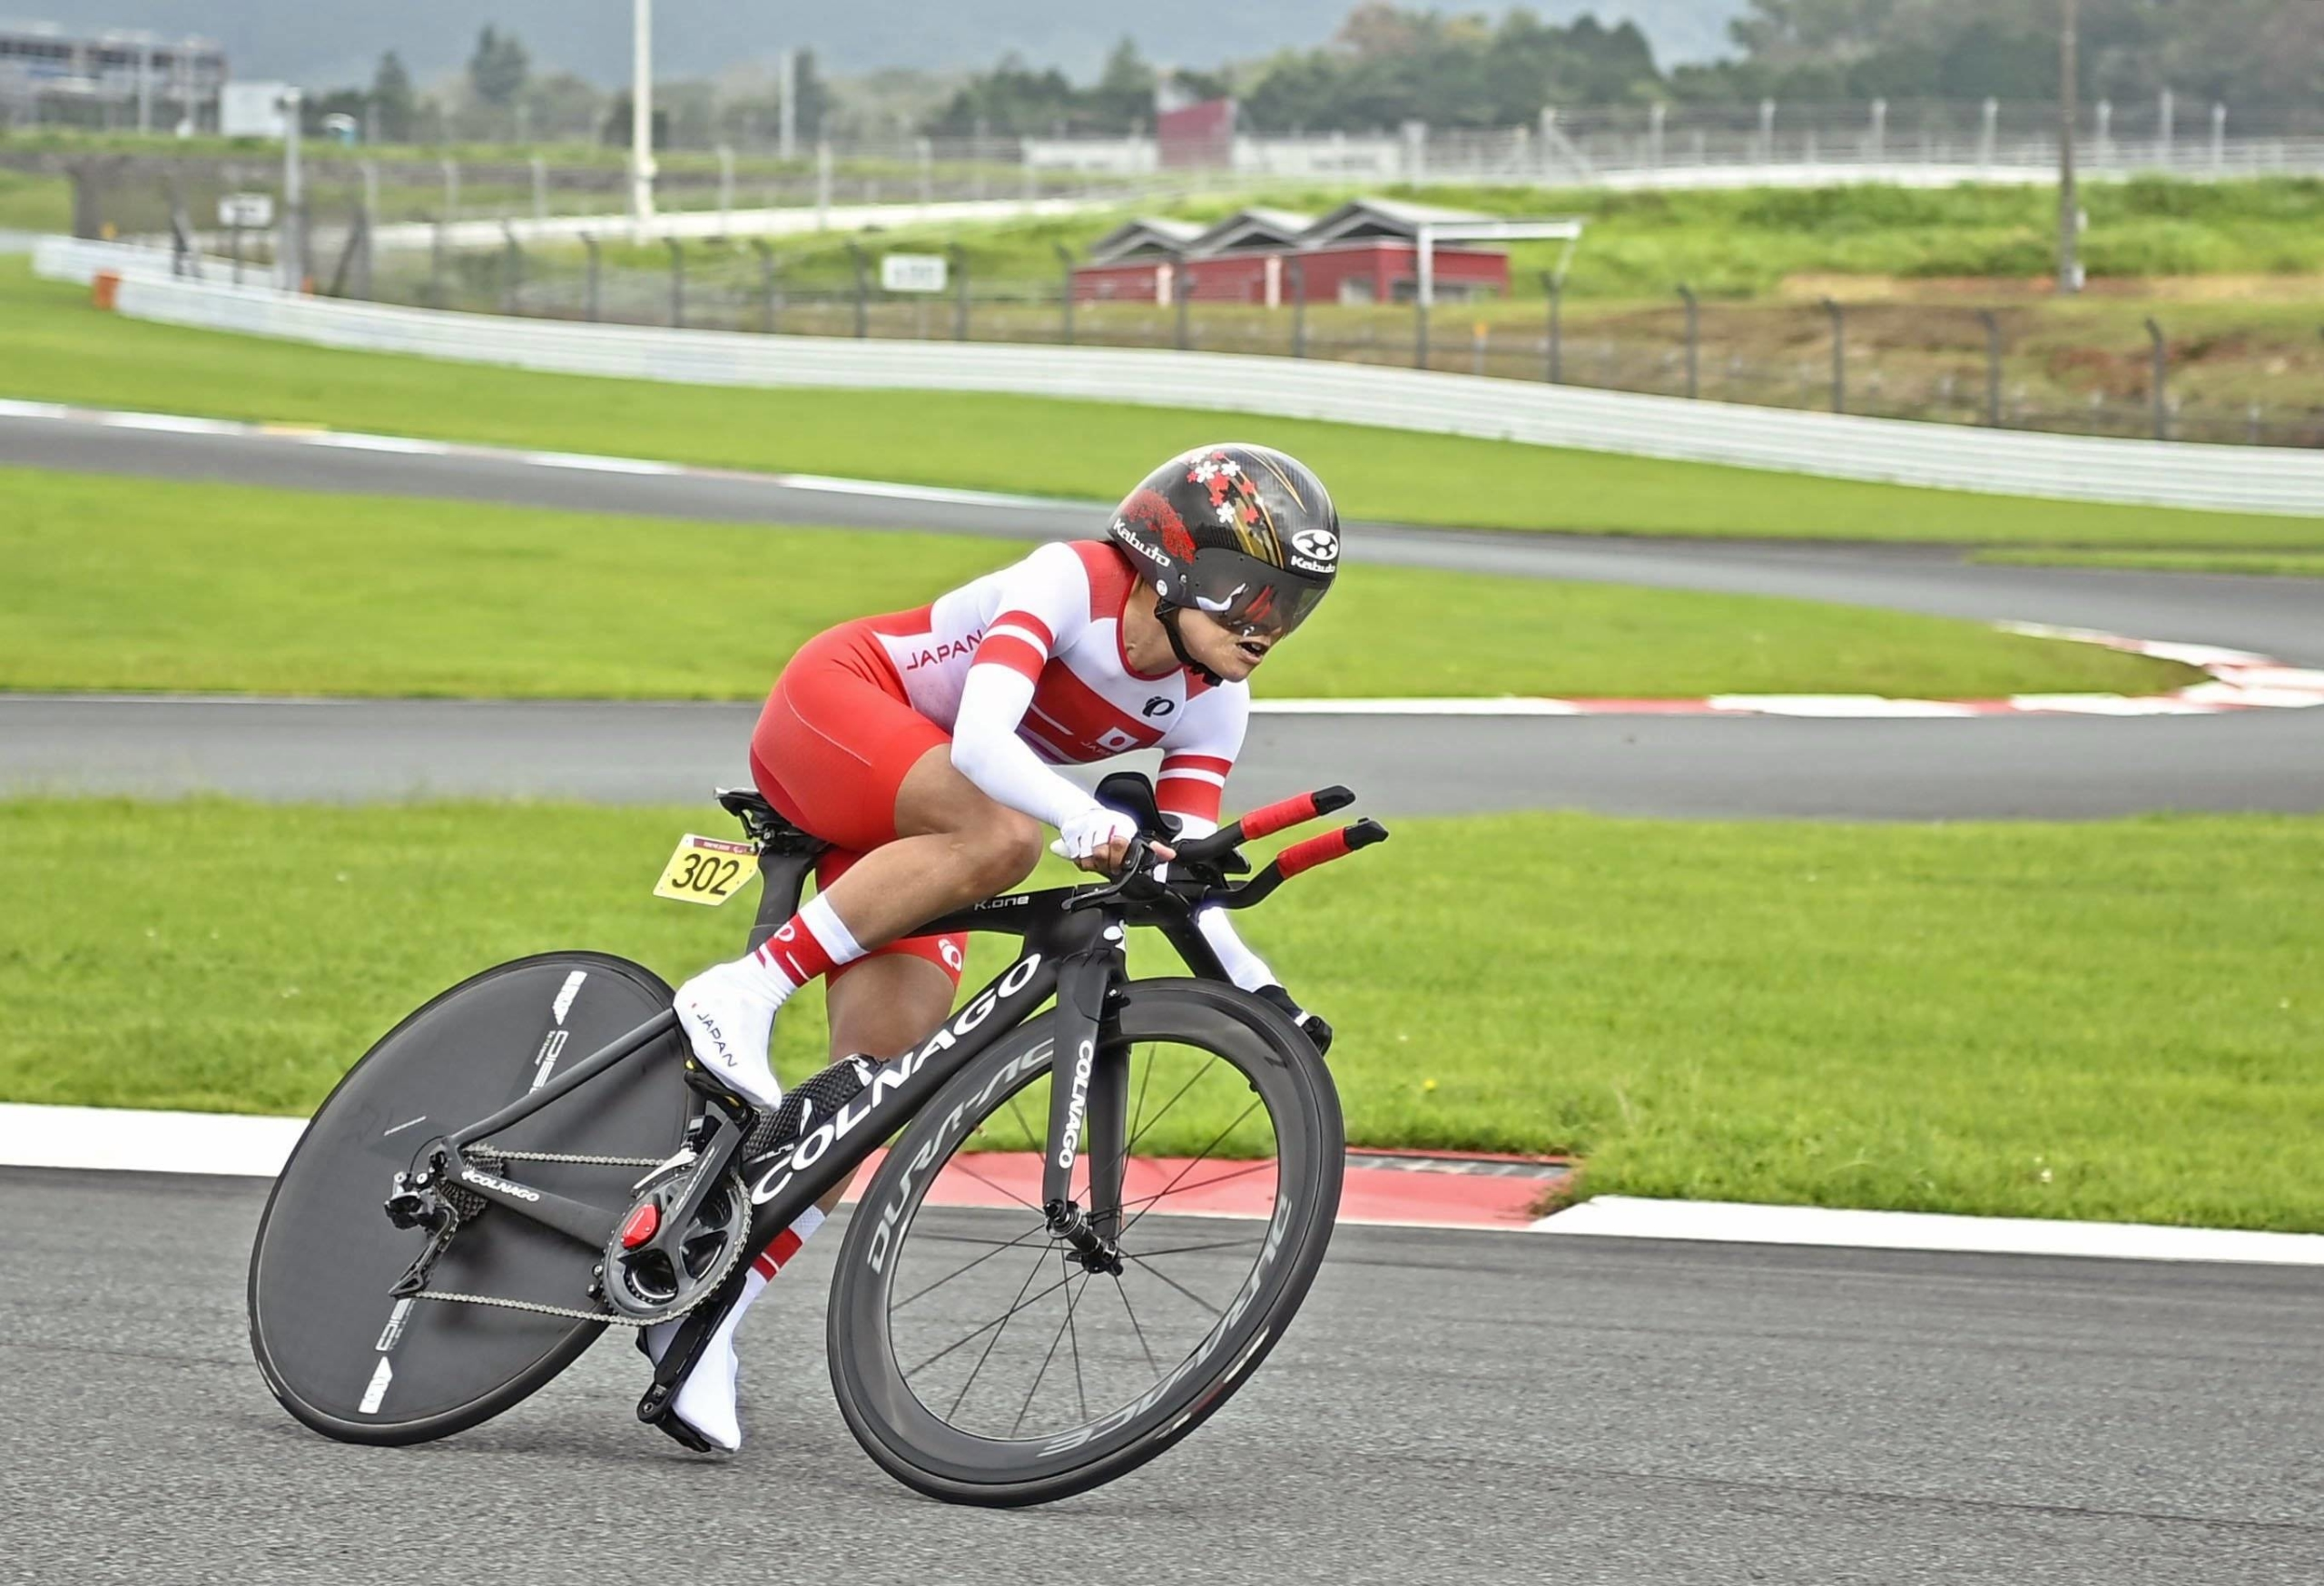 Keiko Sugiura competes in the women's C1-3 road cycling time trial   KYODO